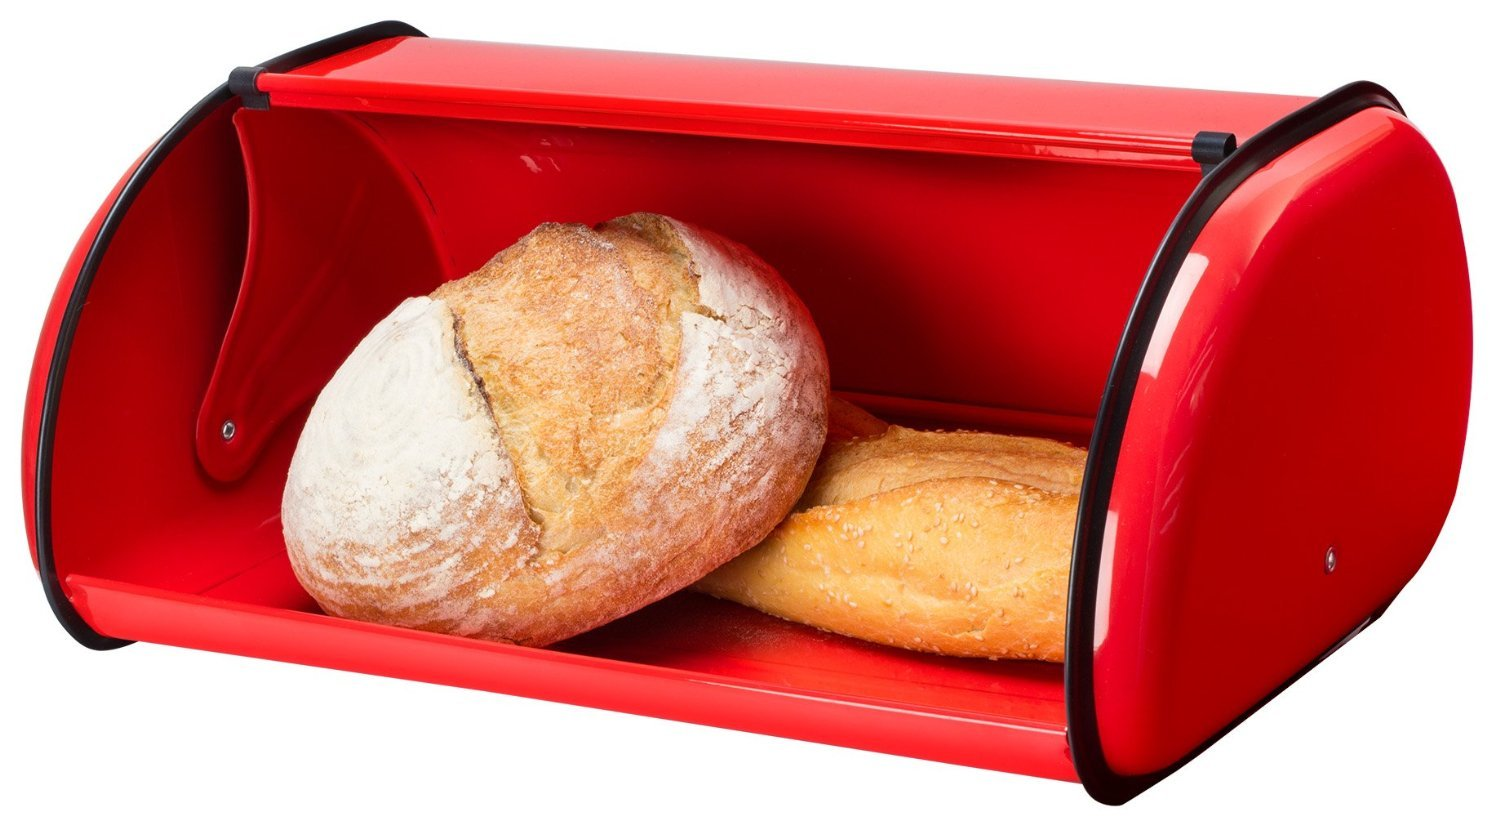 Greenco Stainless Steel Bread Bin Storage Box, Roll up Lid (Red) Homeco GRC0104-B